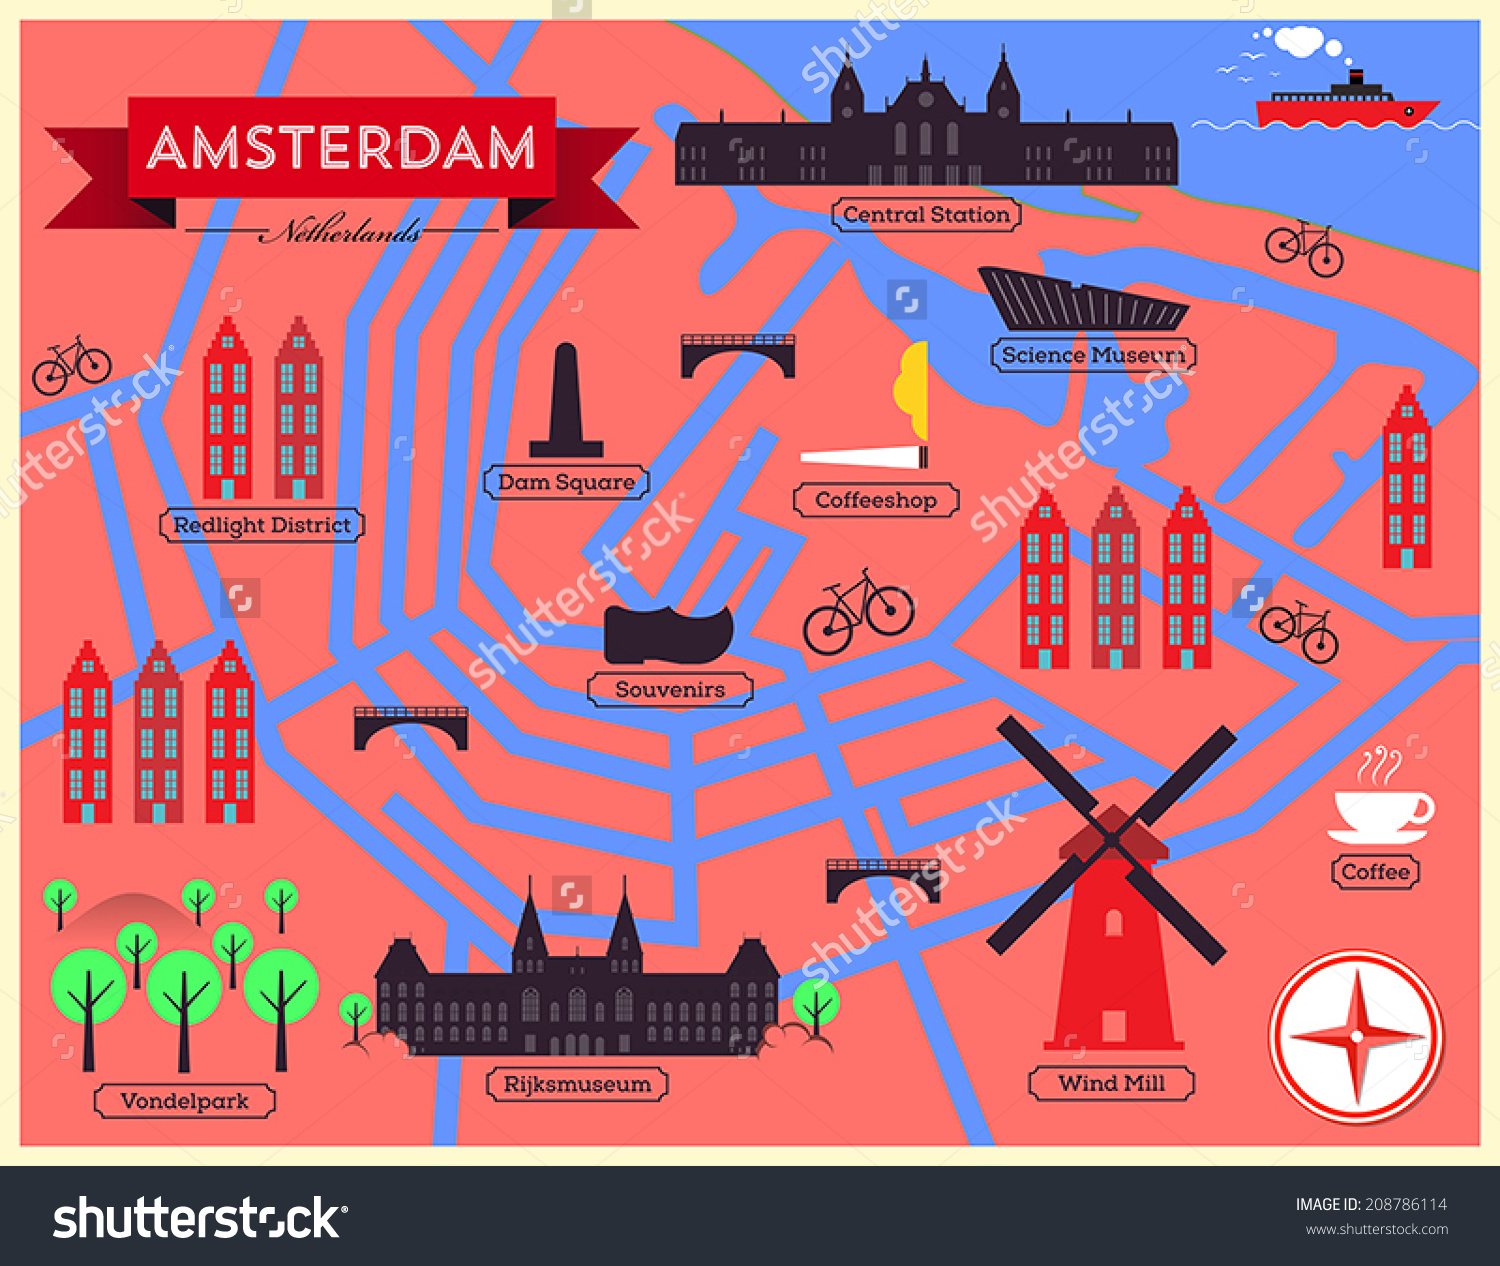 City Map Illustration Amsterdam Landmarks Vector Stock Vector.